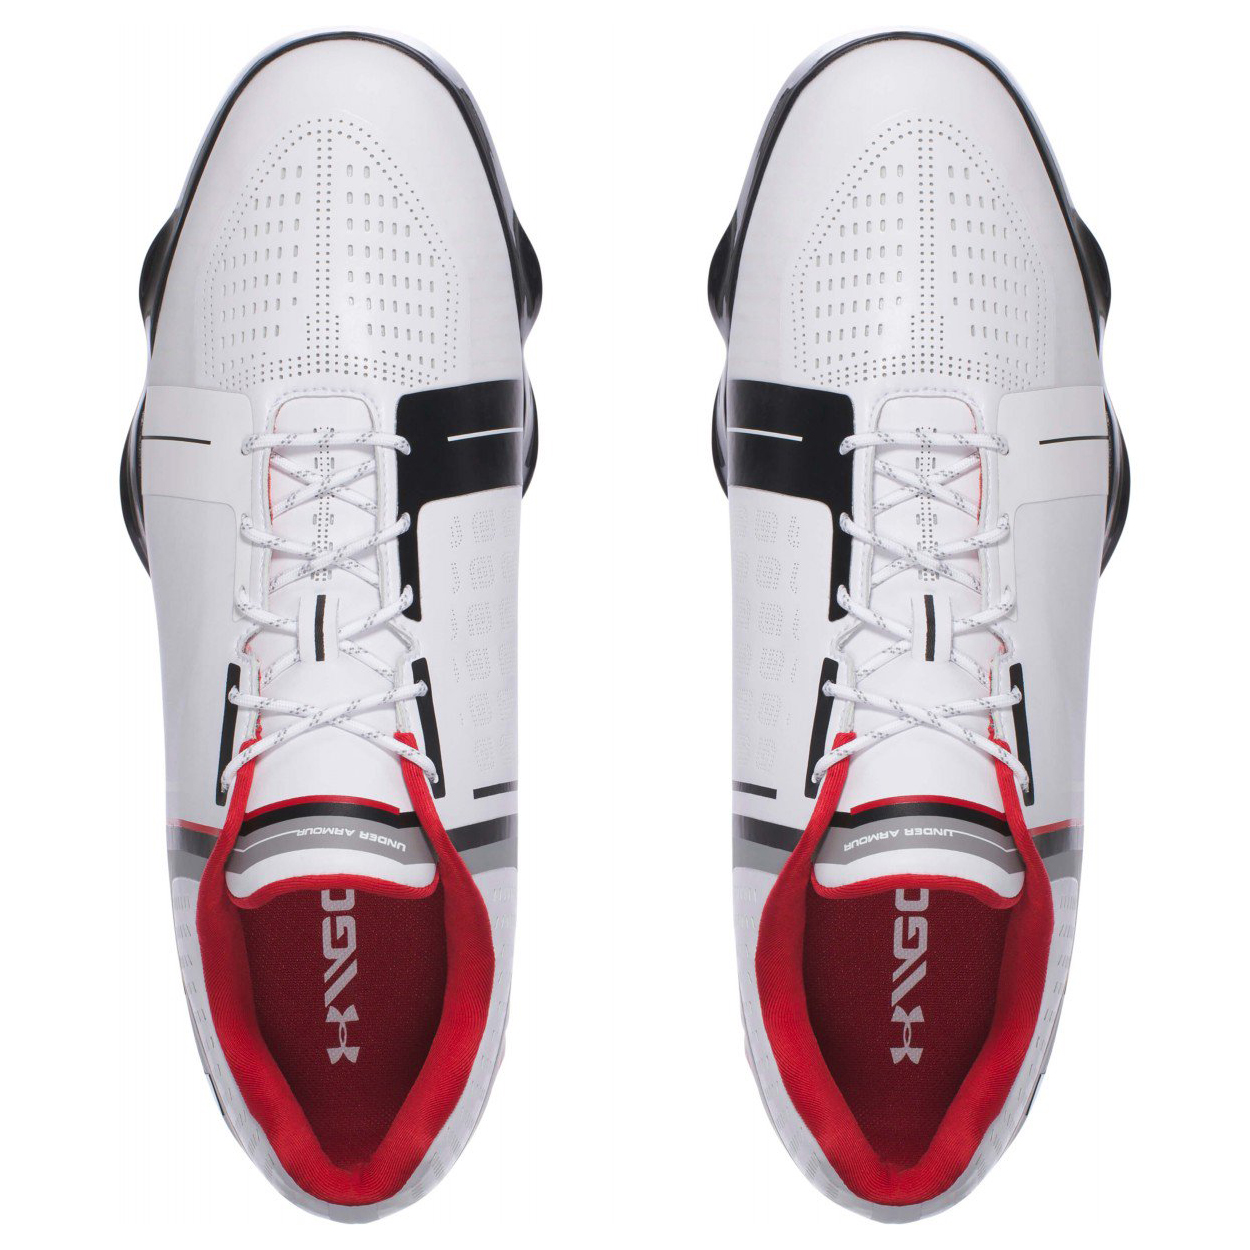 Under-Armour-Men-039-s-Spieth-I-Golf-Shoes-Brand-New thumbnail 17